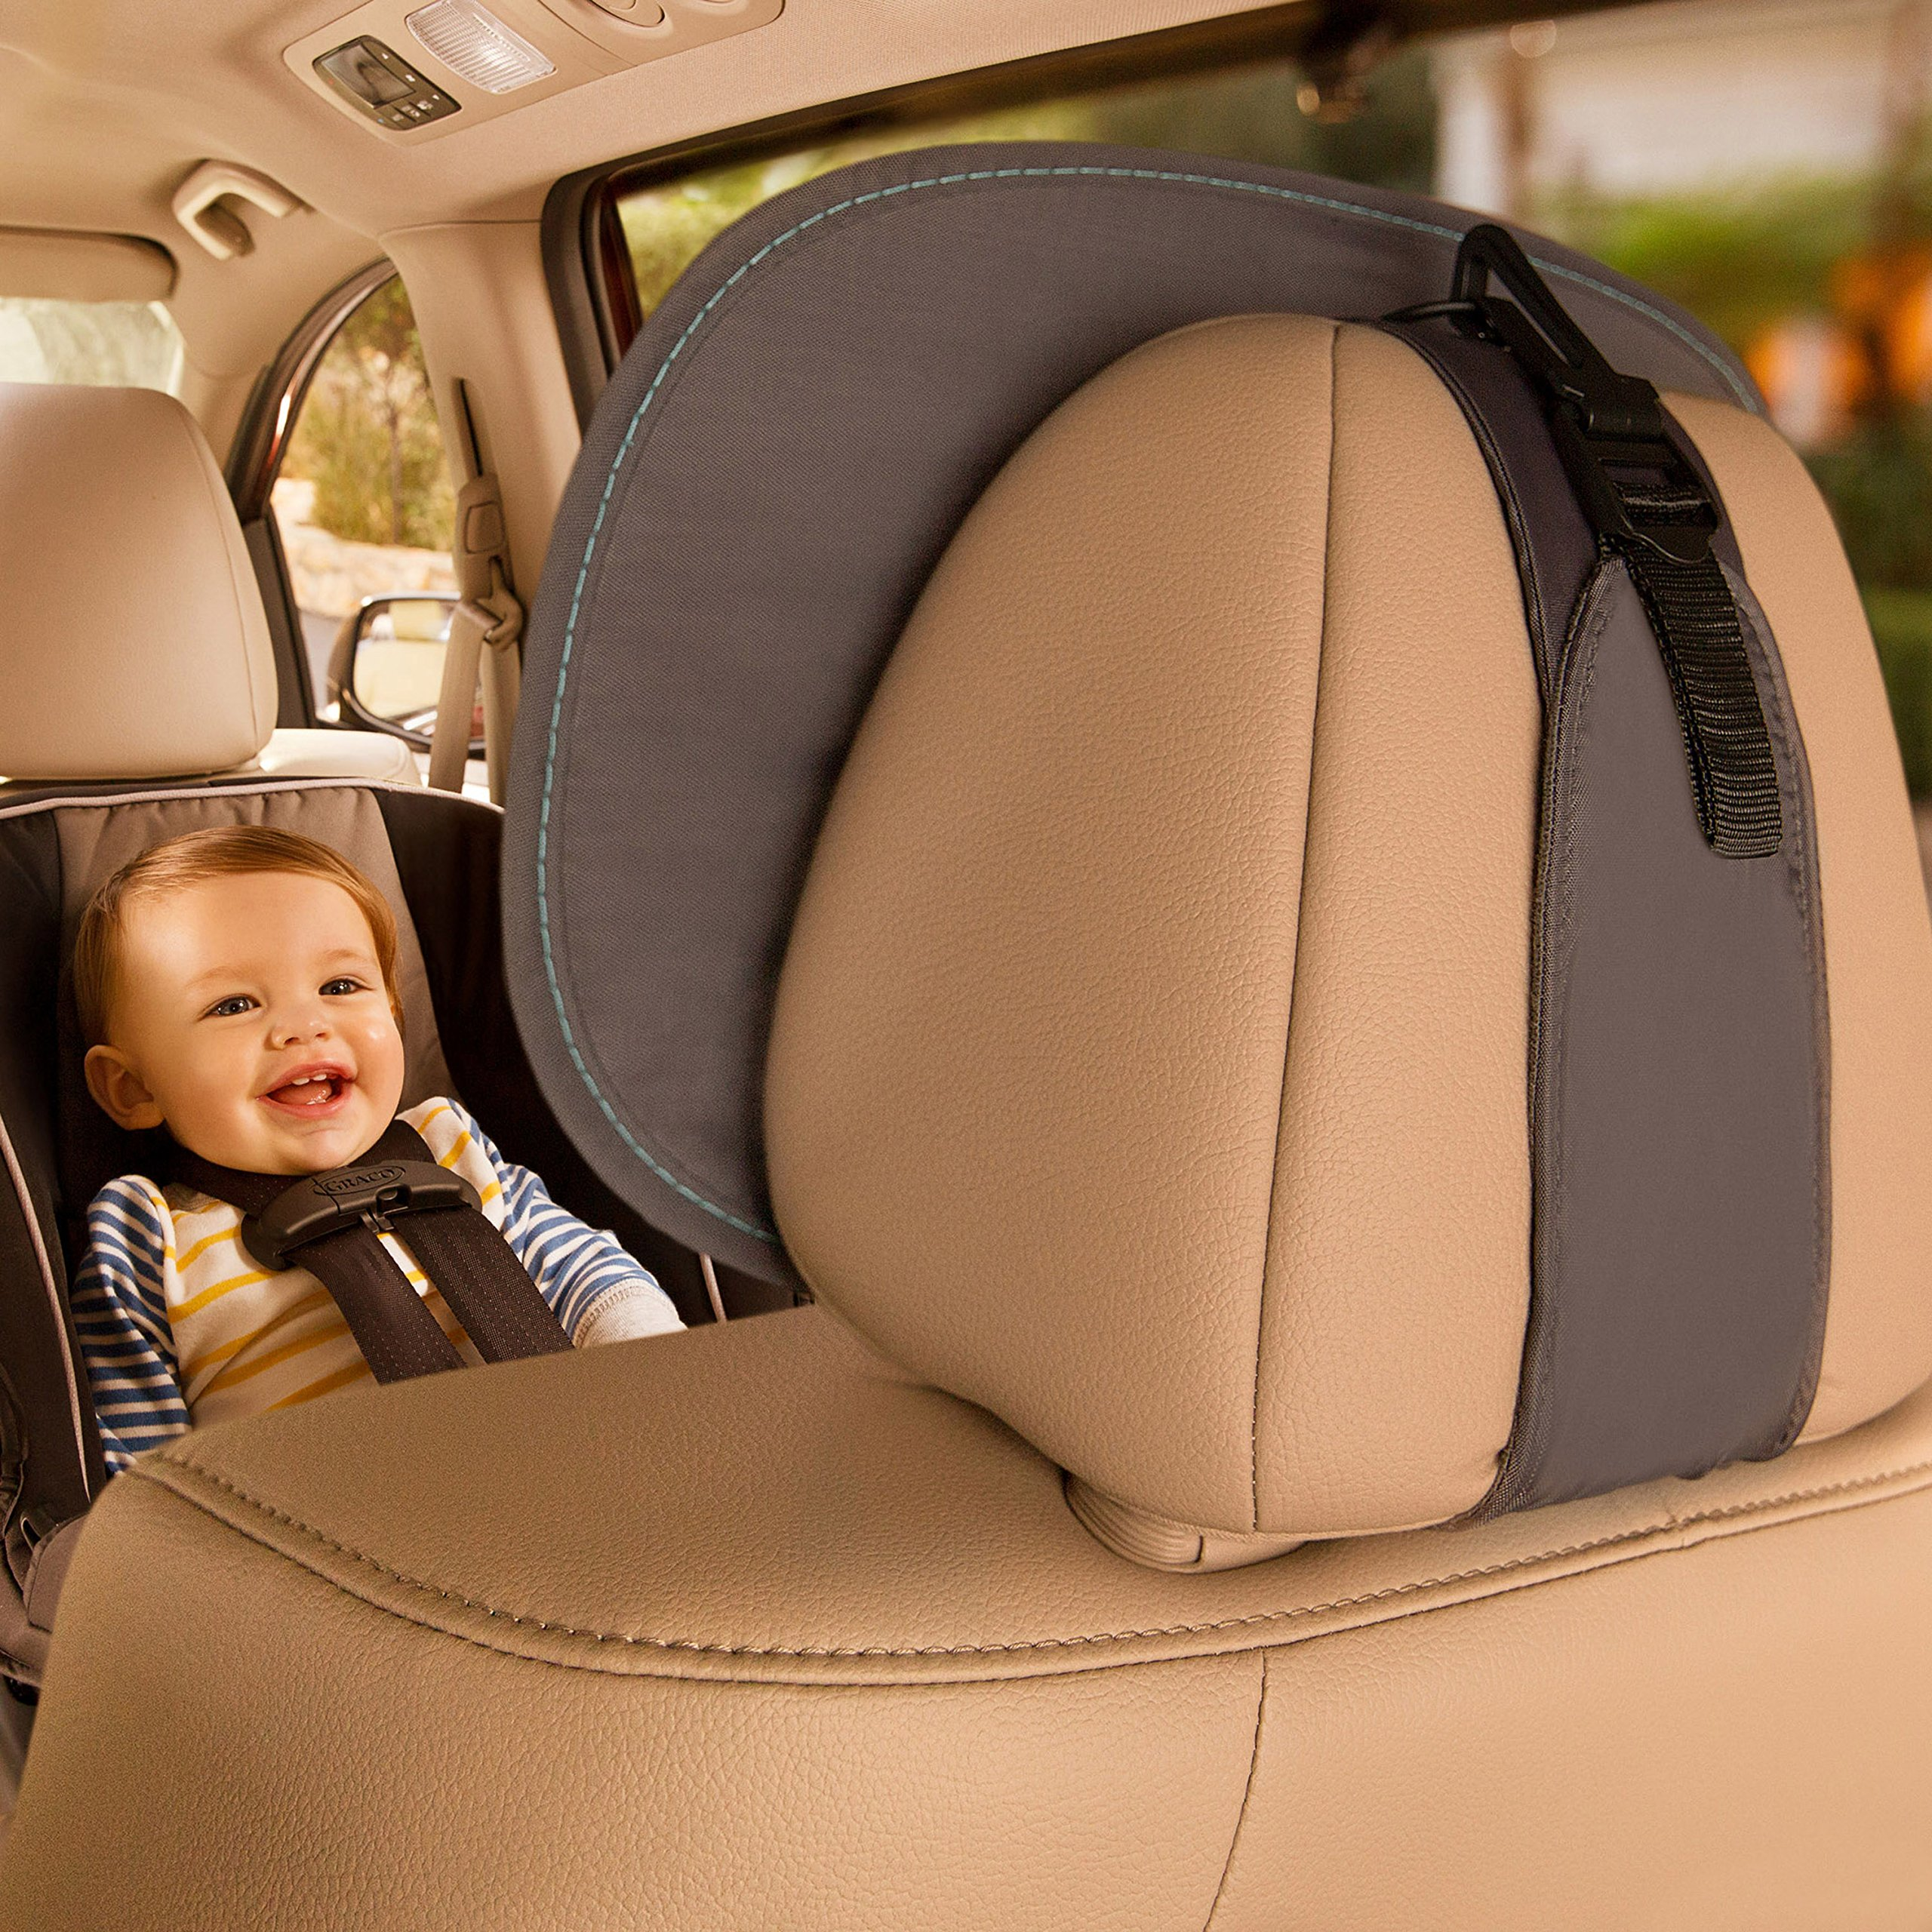 Brica Vivid Reflection Baby In-Sight Car Mirror, Crash Tested and Shatter Resistant by Brica (Image #5)